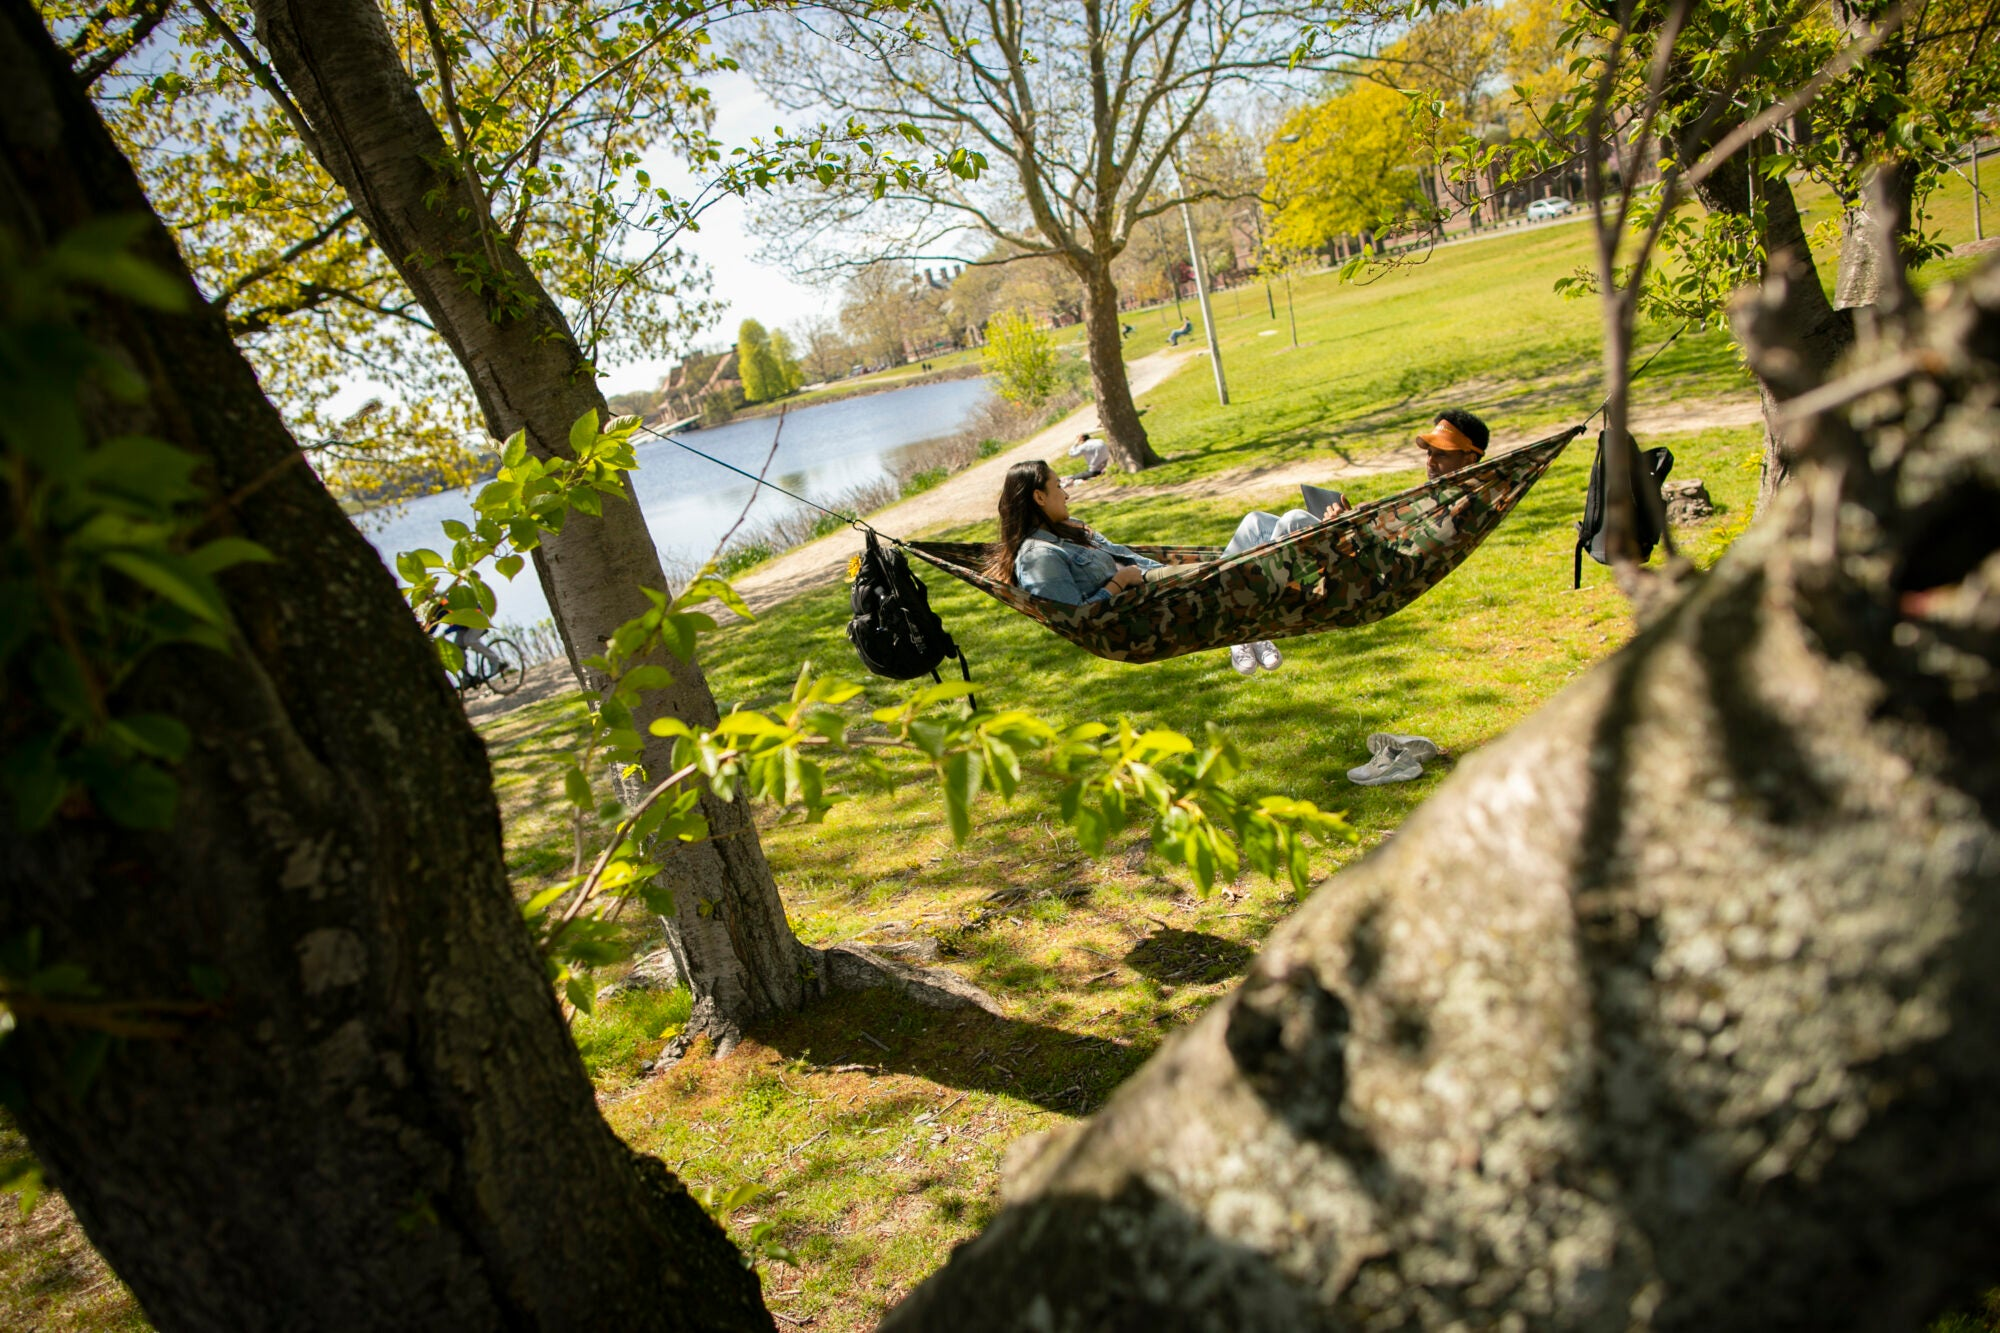 Two students in a hammock